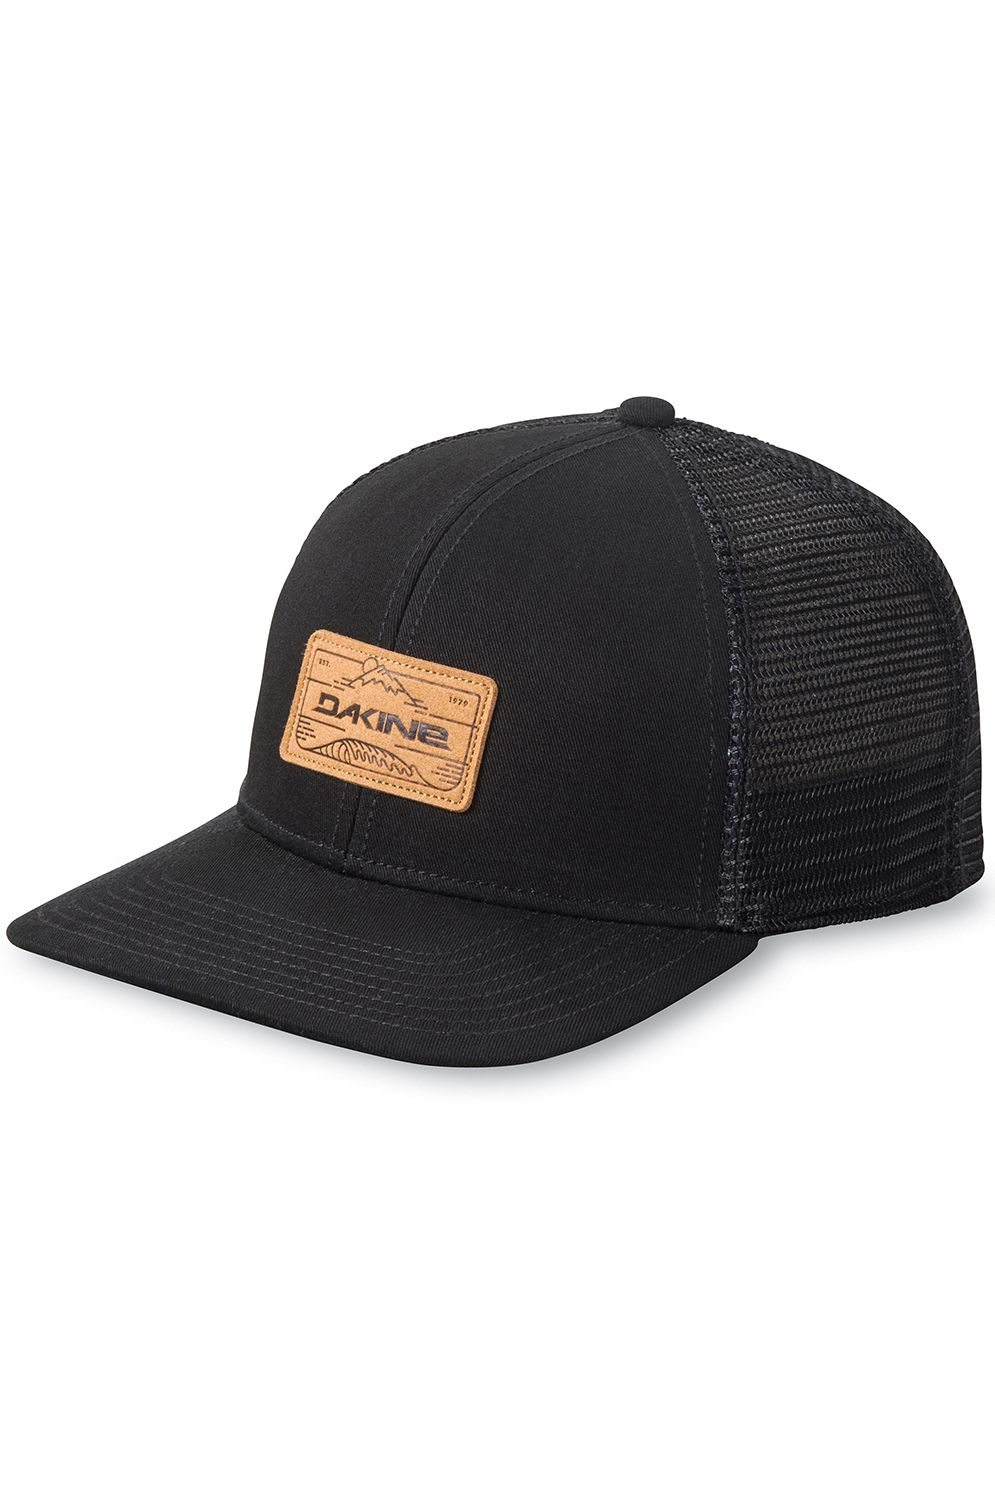 Dakine Cap   PEAK TO PEAK TRUCKER Black